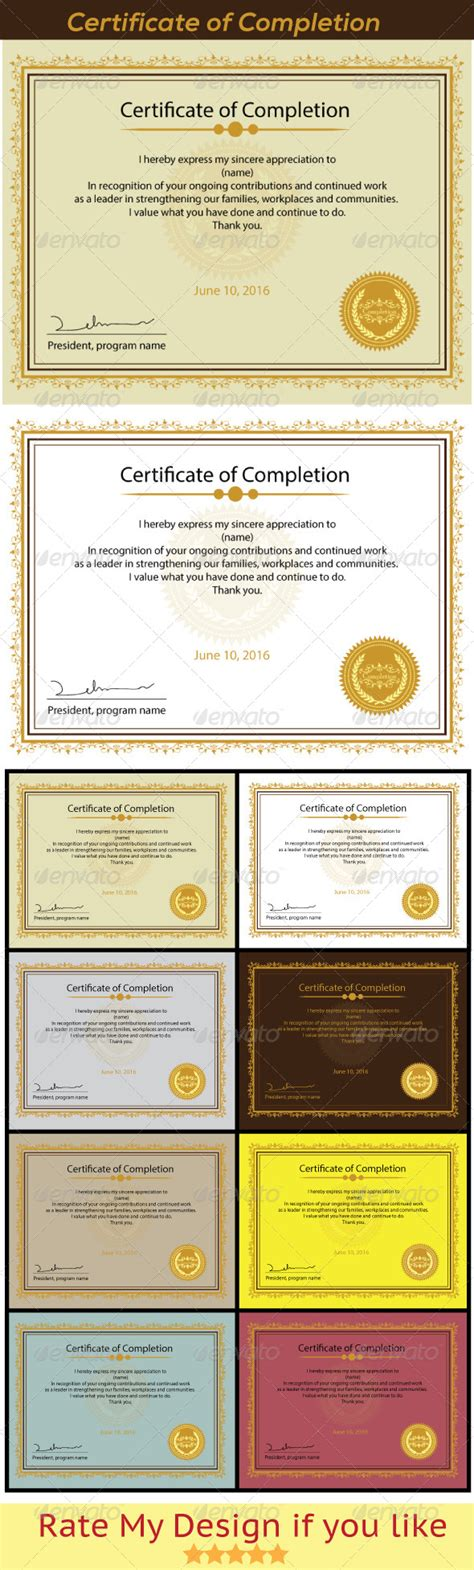 Welding Certificate Template by Welding Certificate Templates Free Printable 187 Chreagle